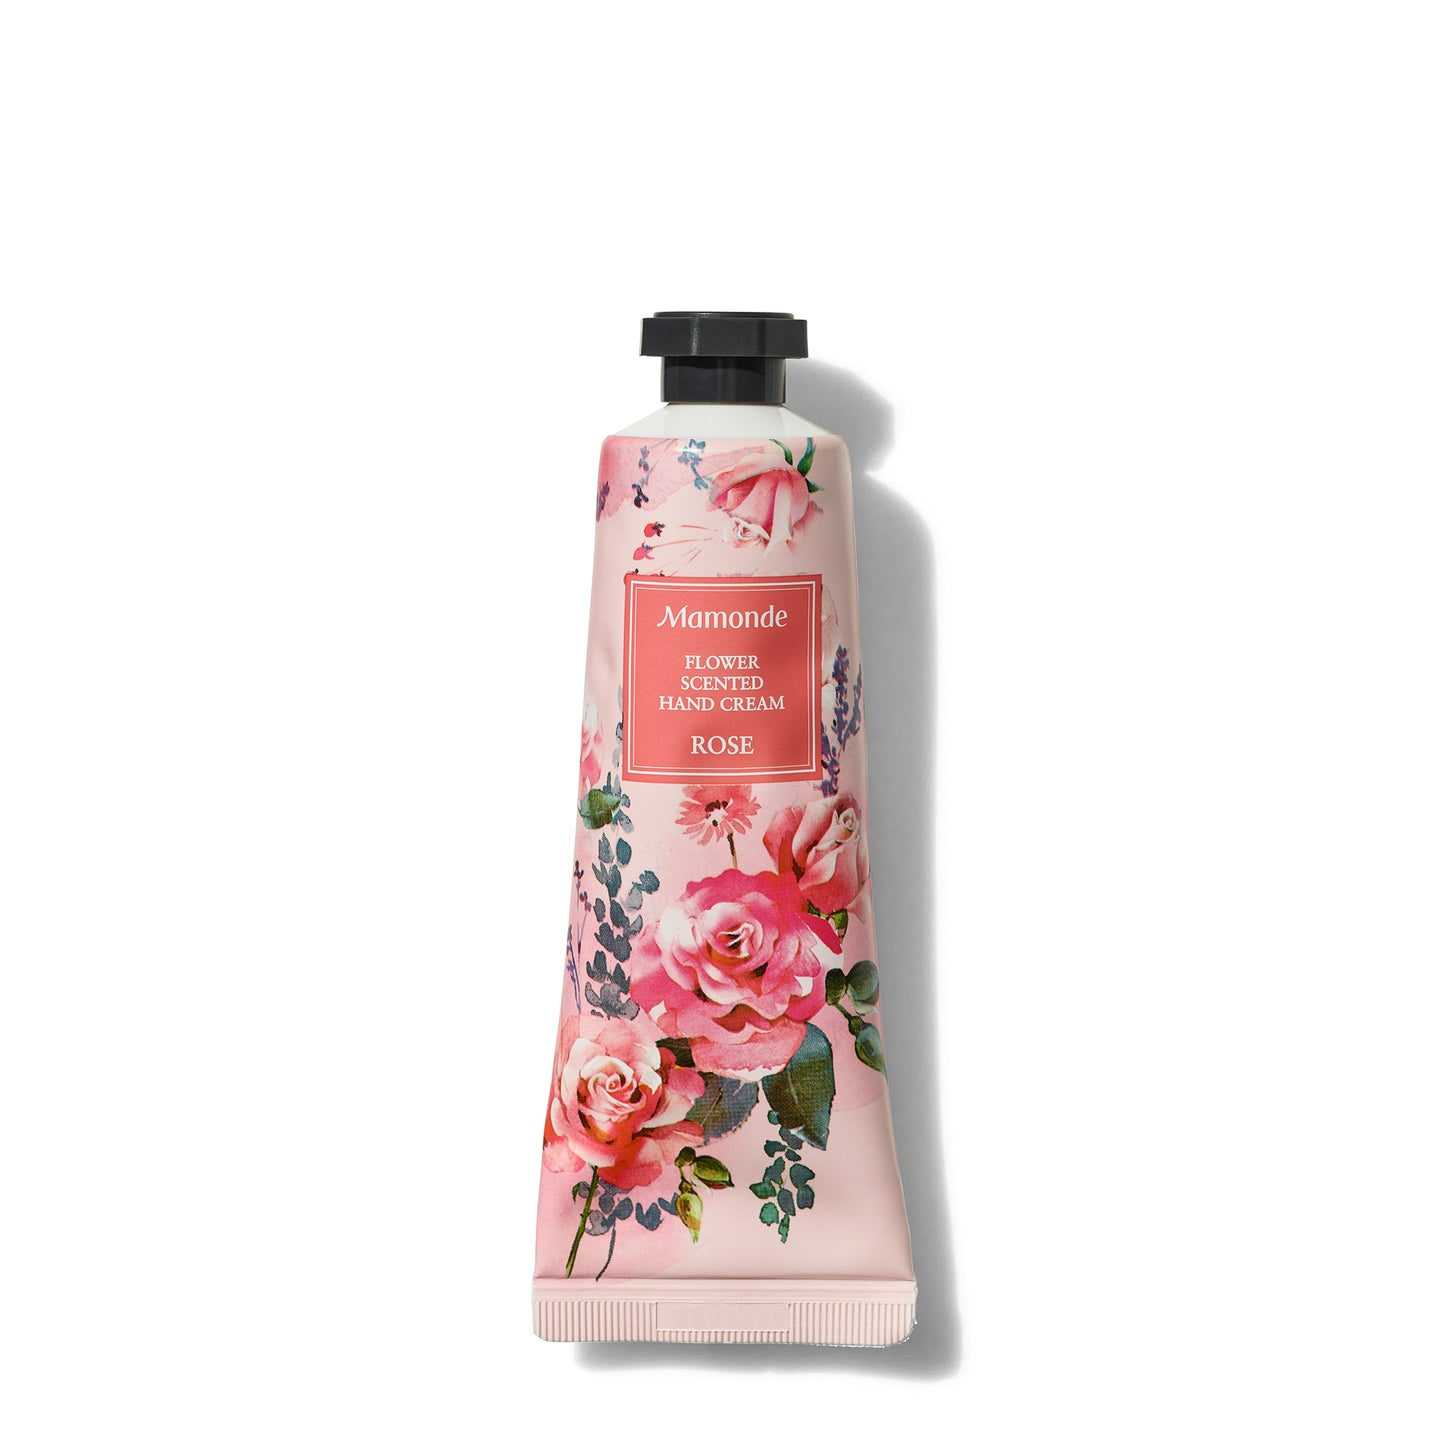 Rose Flower Scented Hand Cream